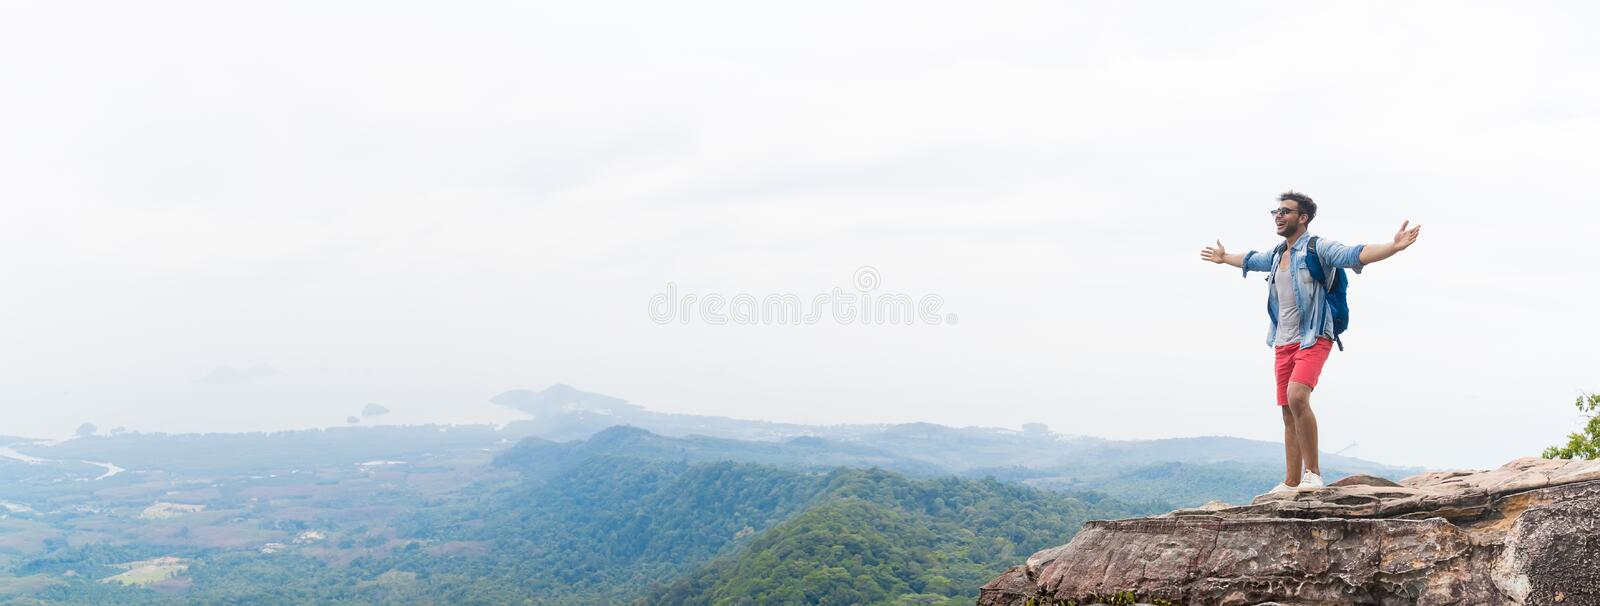 Man On Mountain Peak Raising Hands With Backpacks Enjoy Landscape Freedom Concept, Young Guy Tourist royalty free stock photo